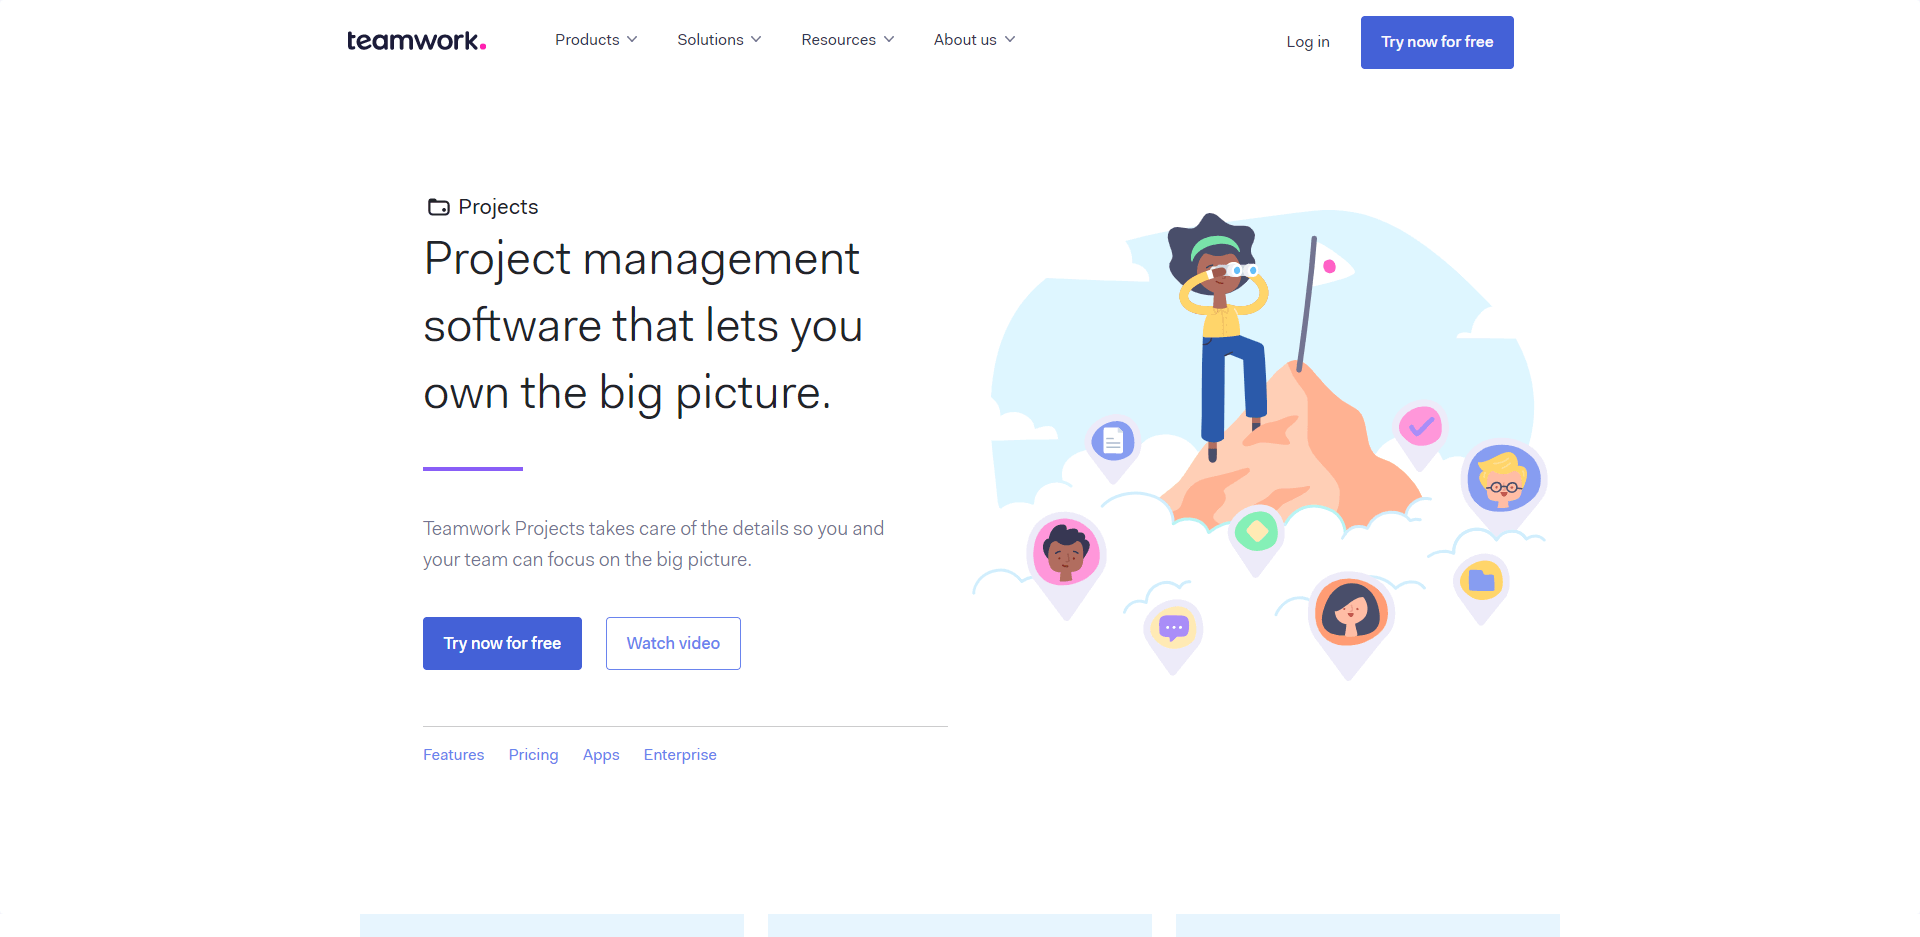 Teamwork is the project management software that lets you own the big picture